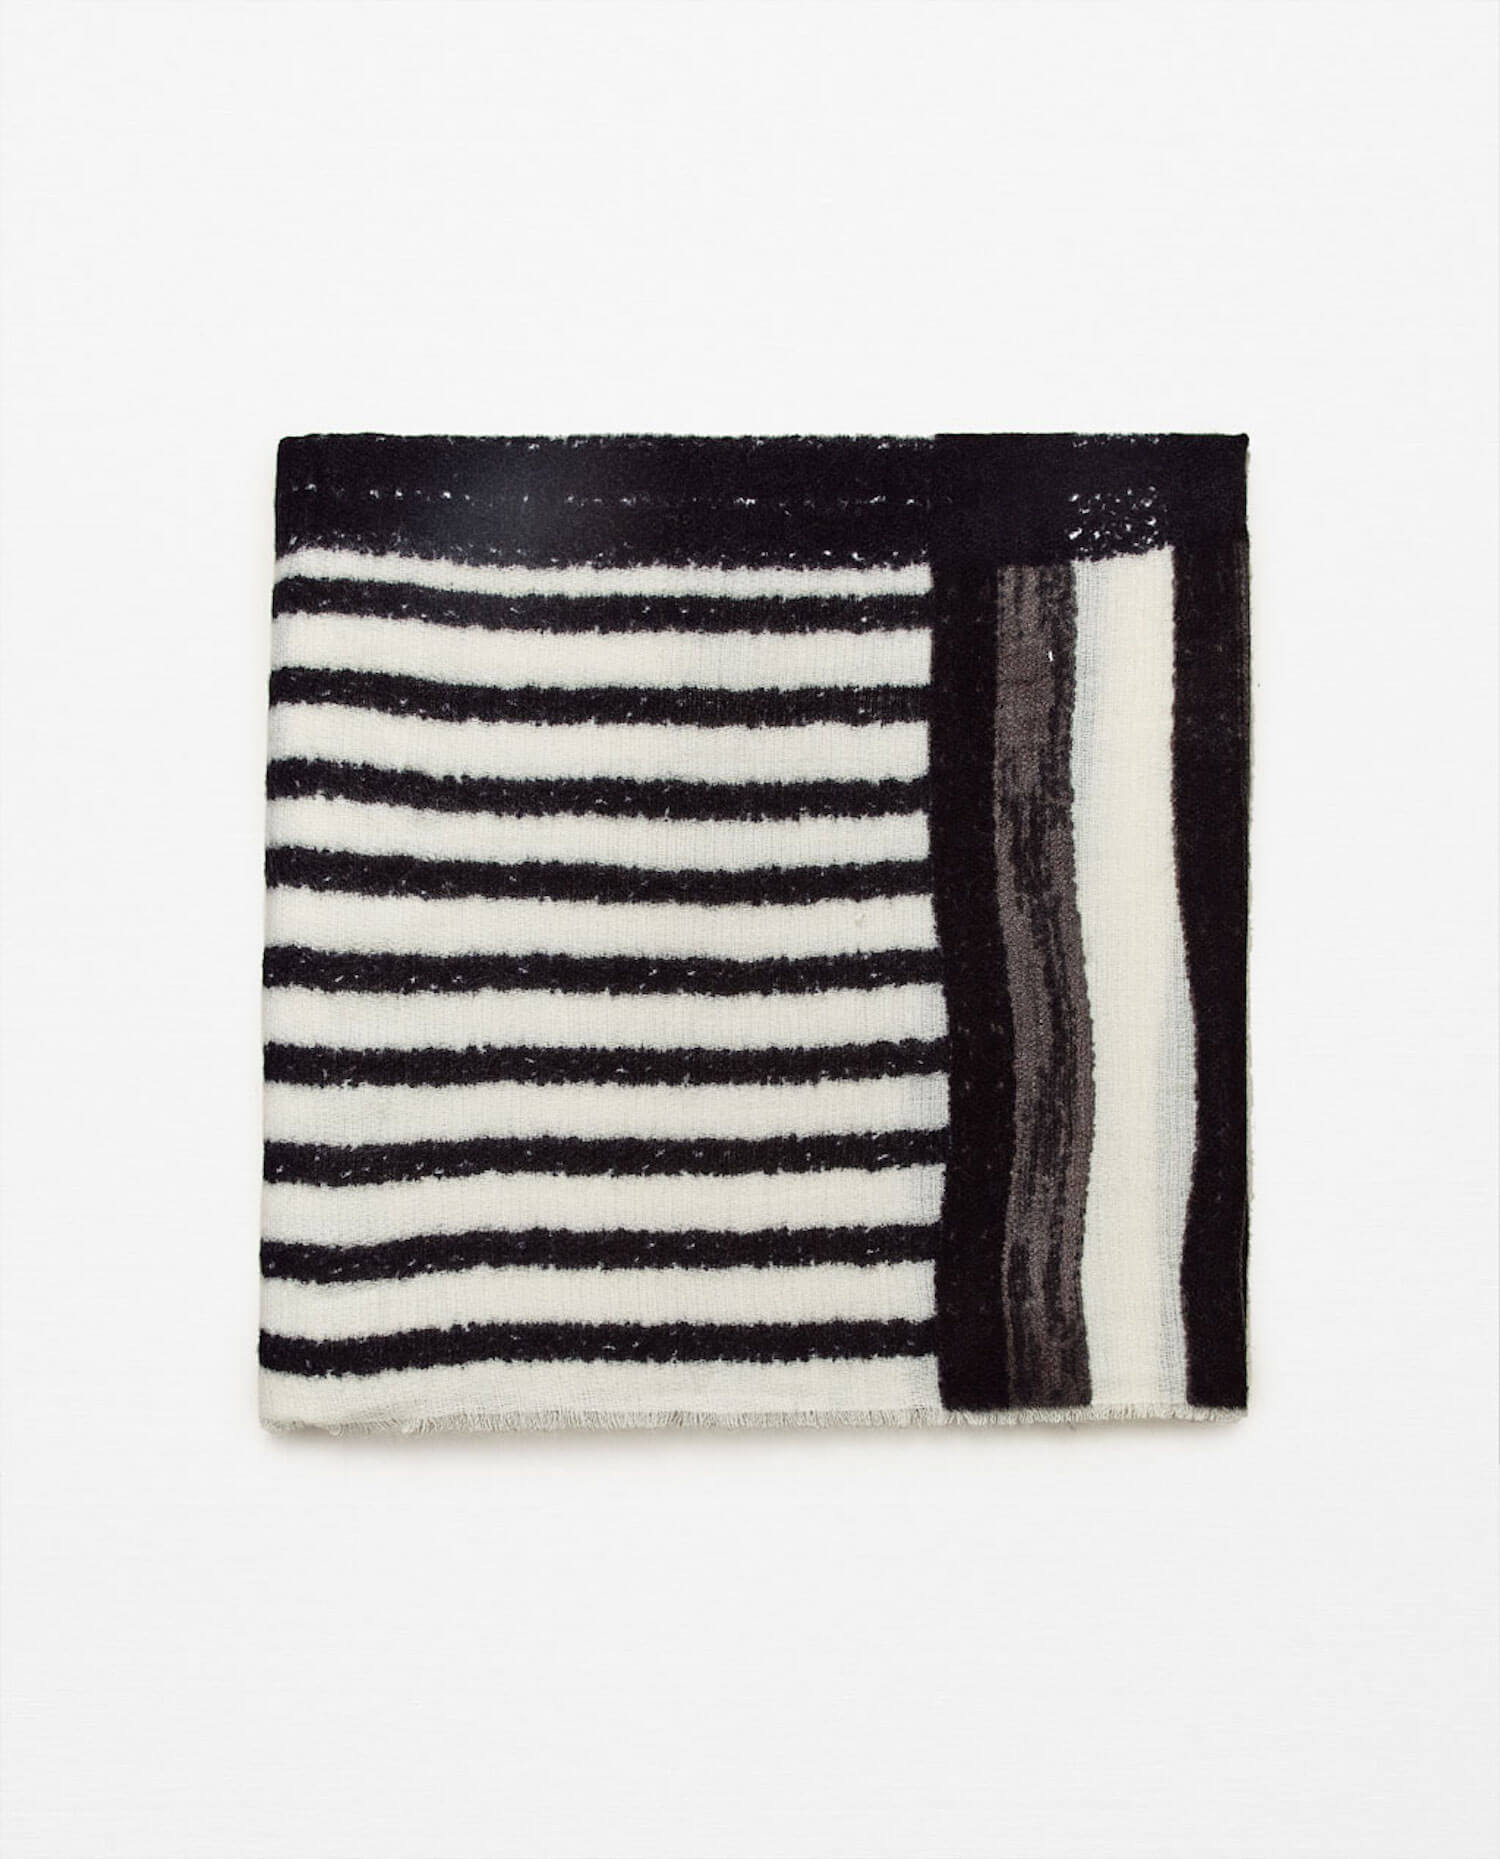 est living karina calvert jones gift guide zara scarf